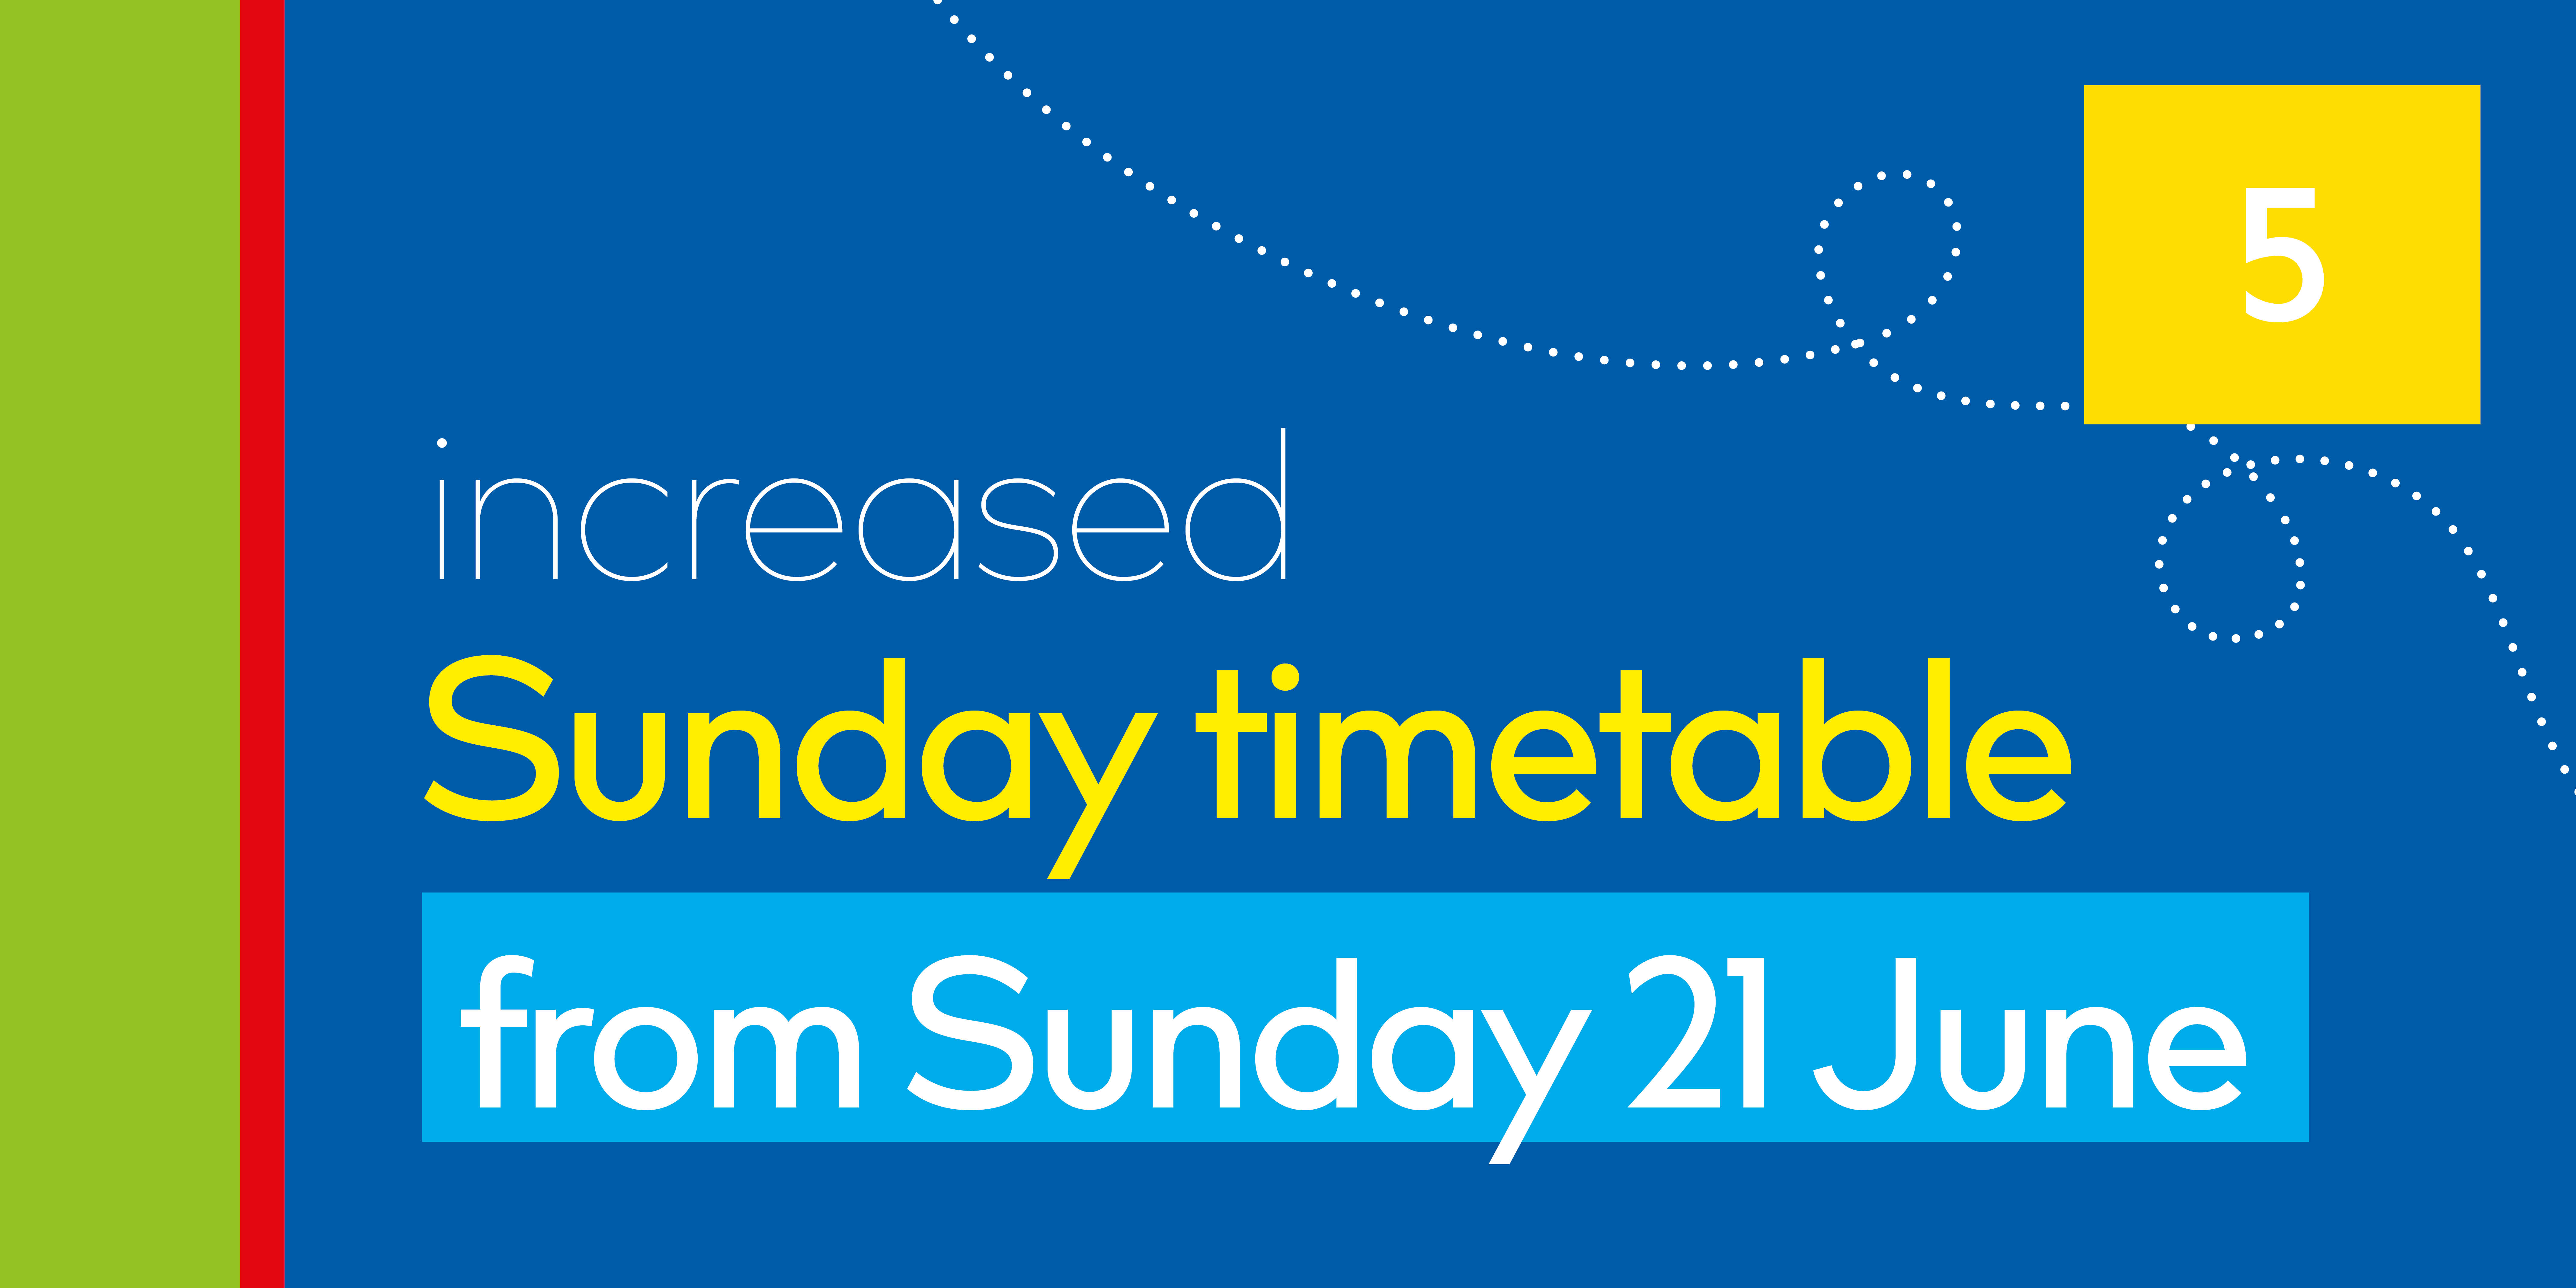 Image reading 'Increased Sunday timetable from Sunday 21 June'